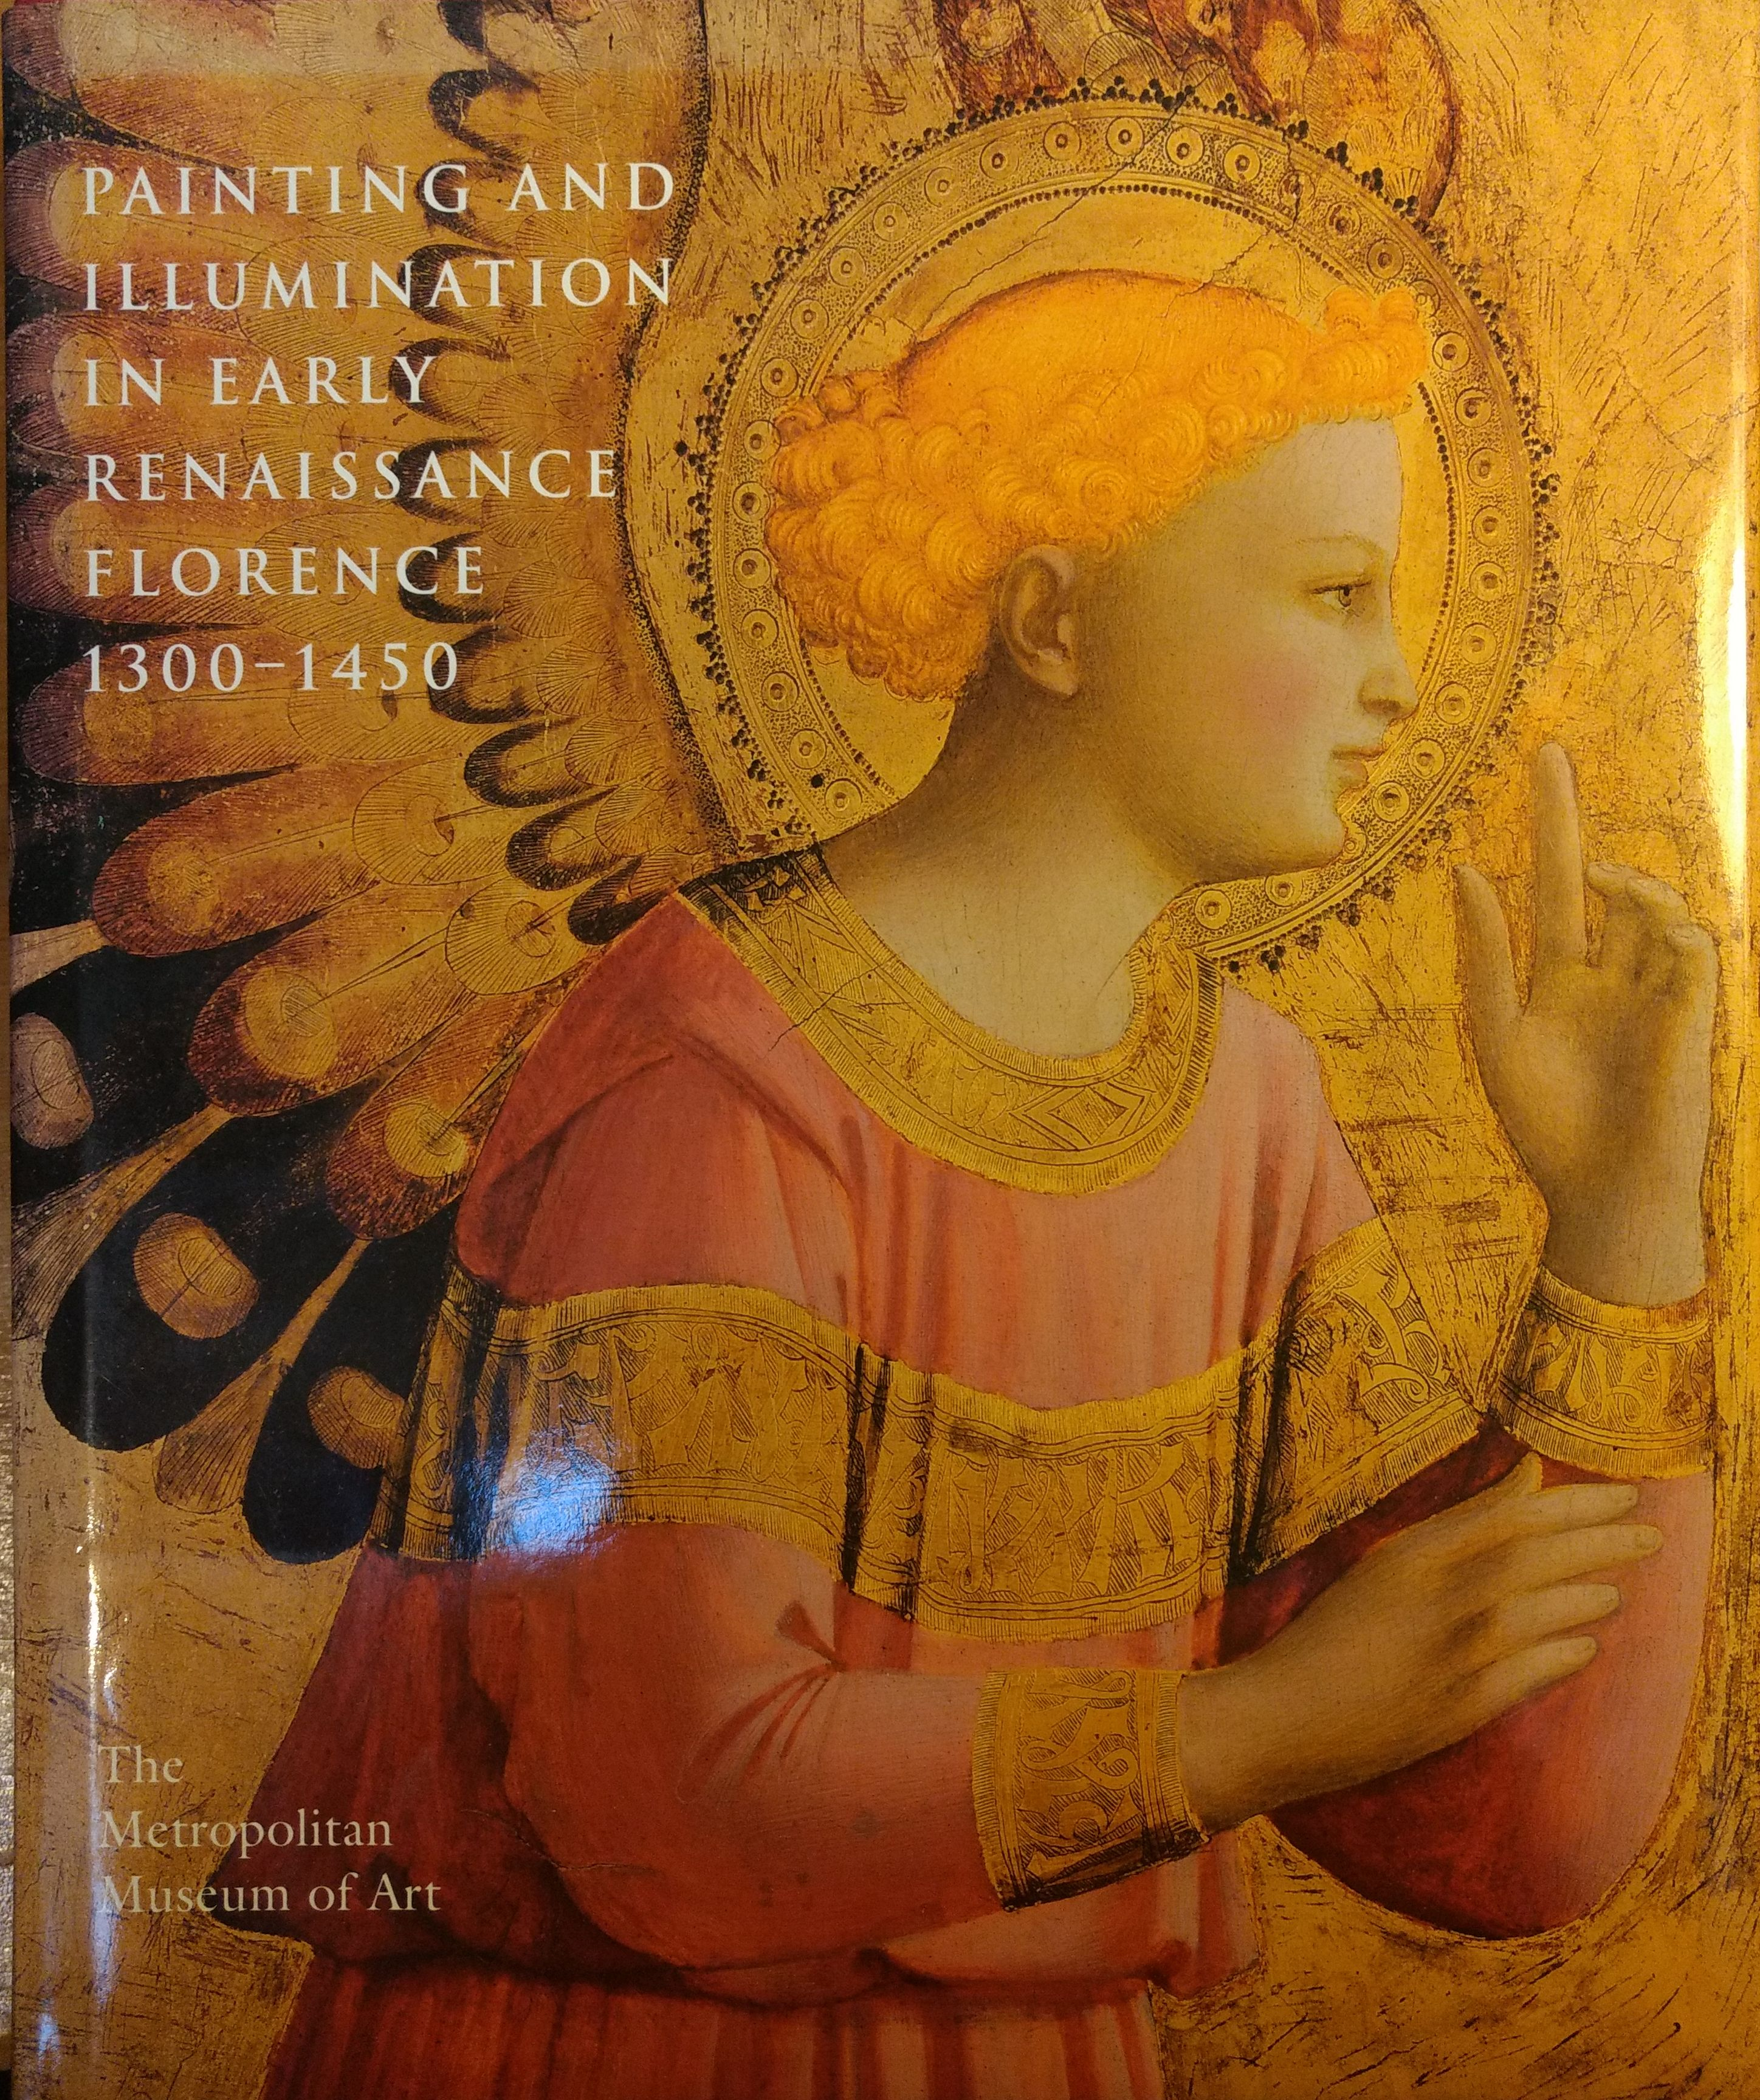 Image for Painting and Illumination in Early Renaissance Florence 1300-1450